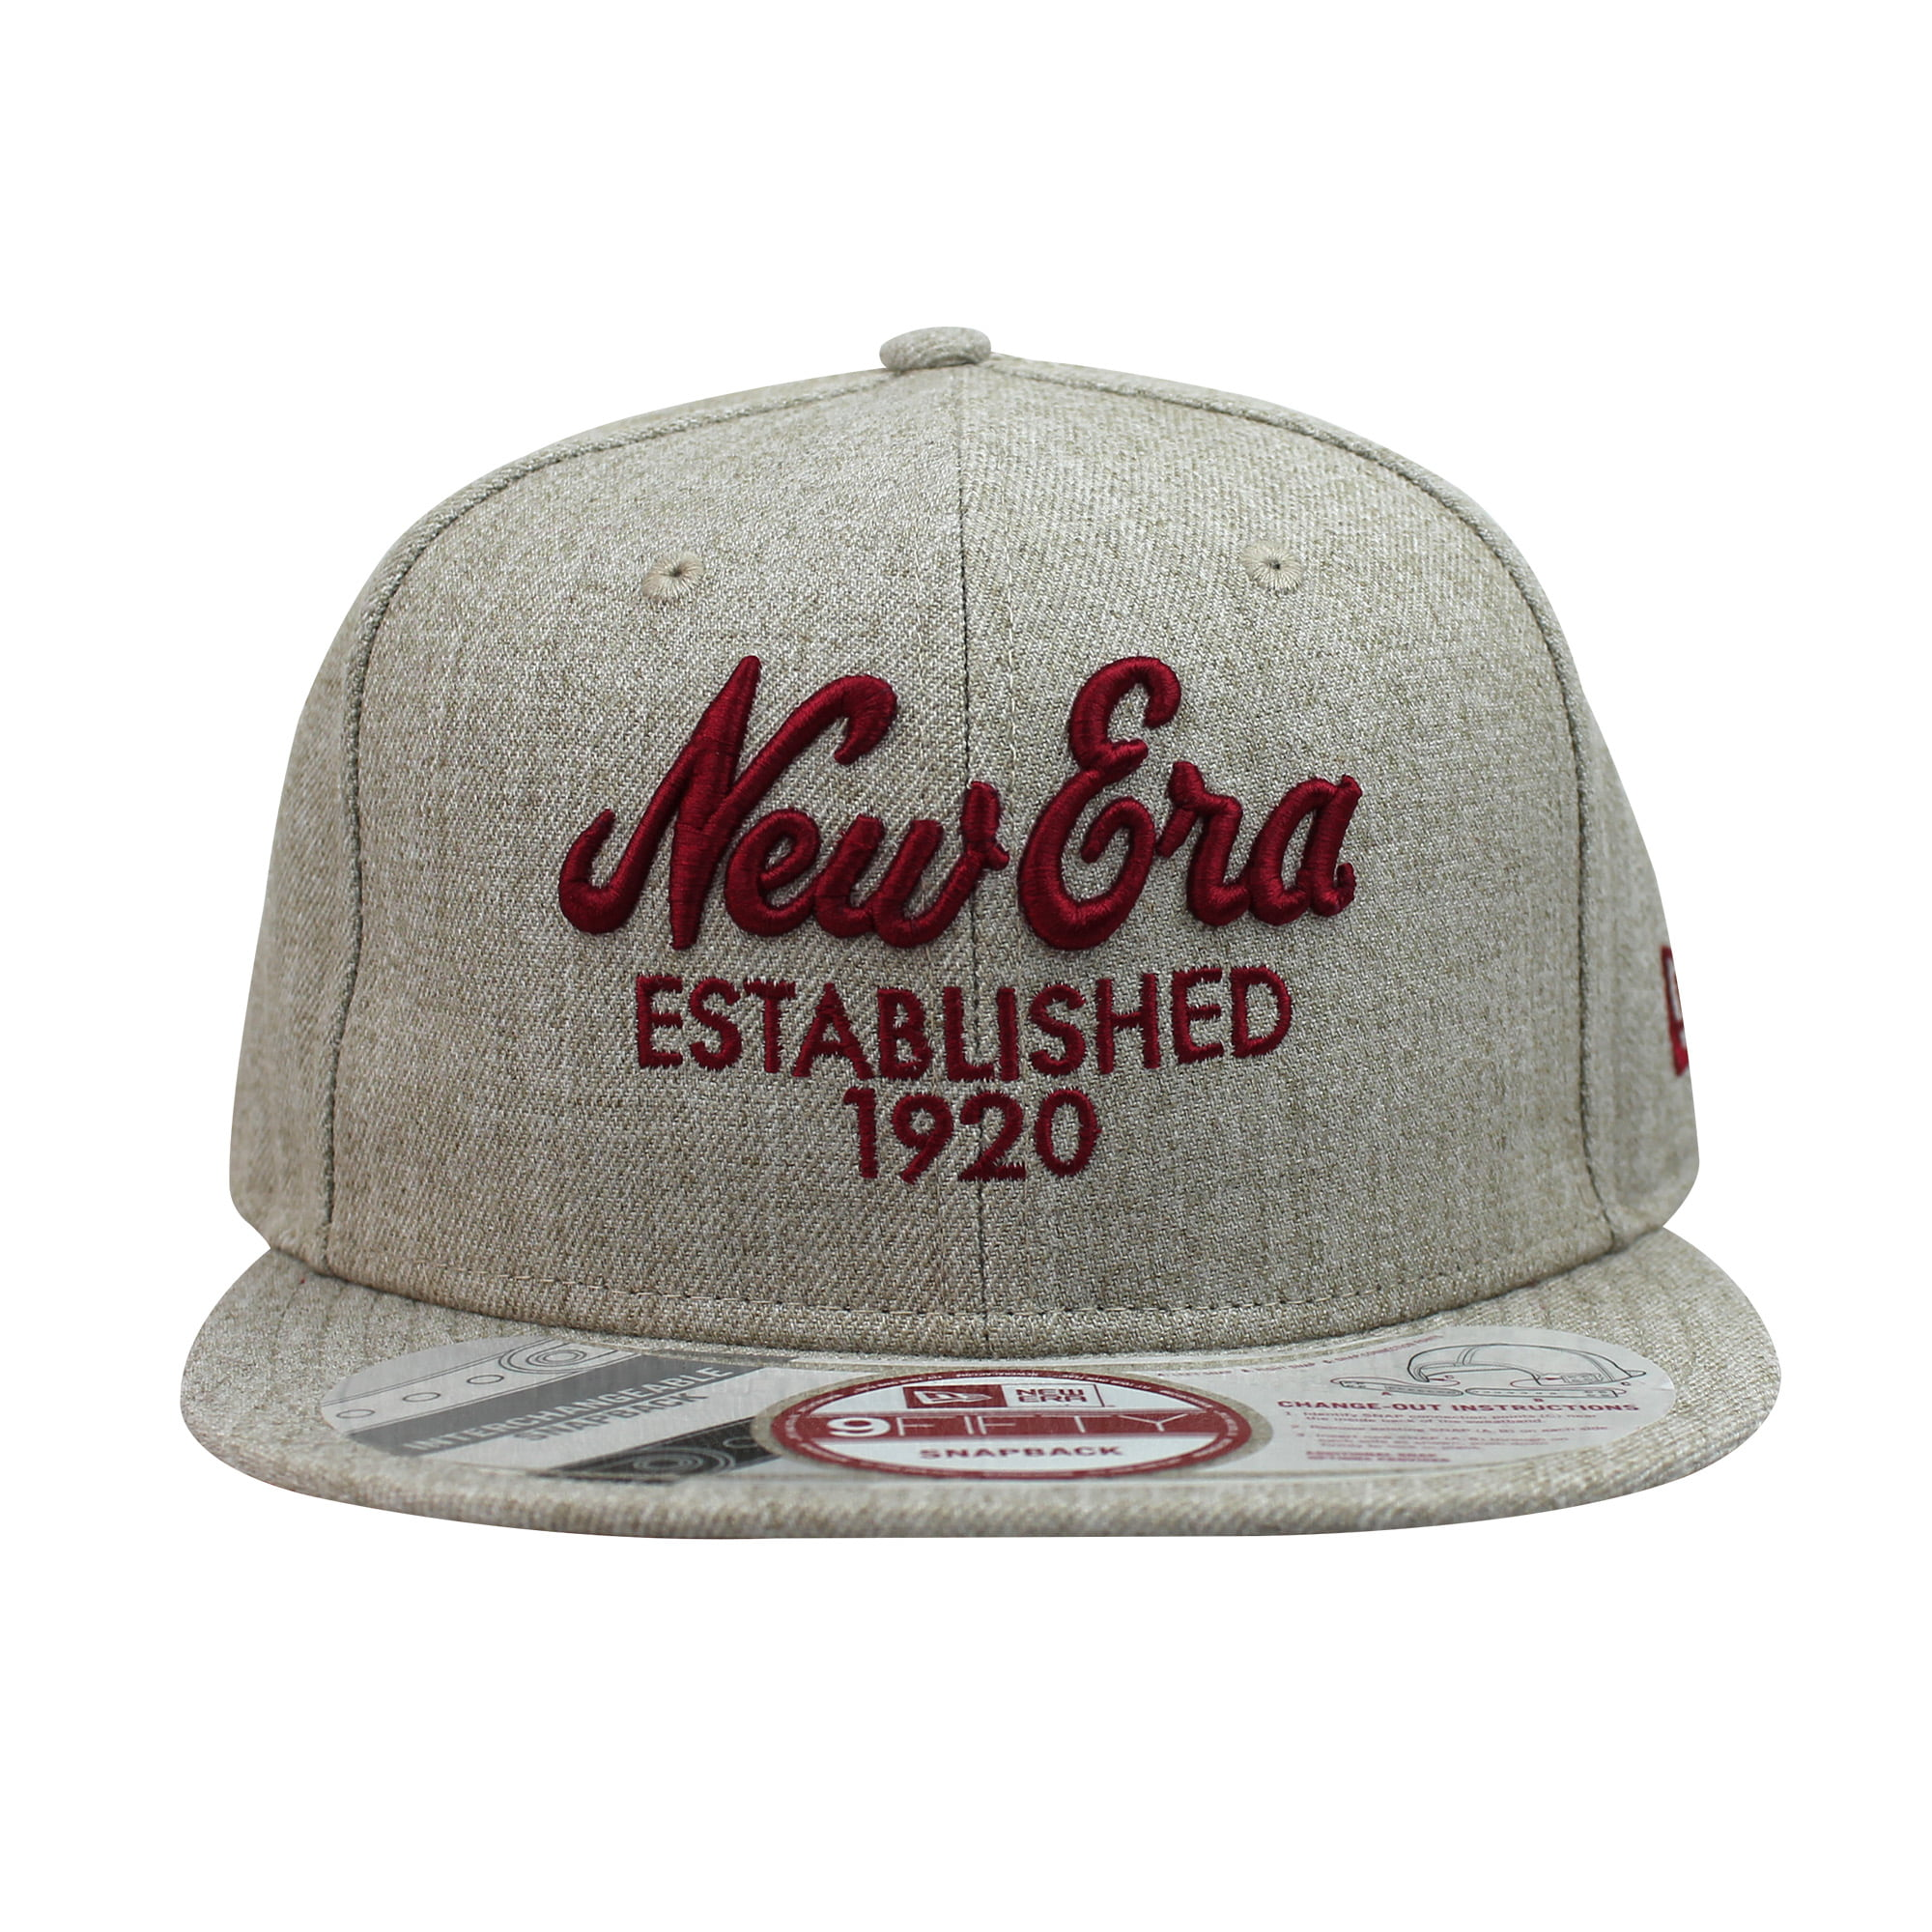 bone new era established 1920 950